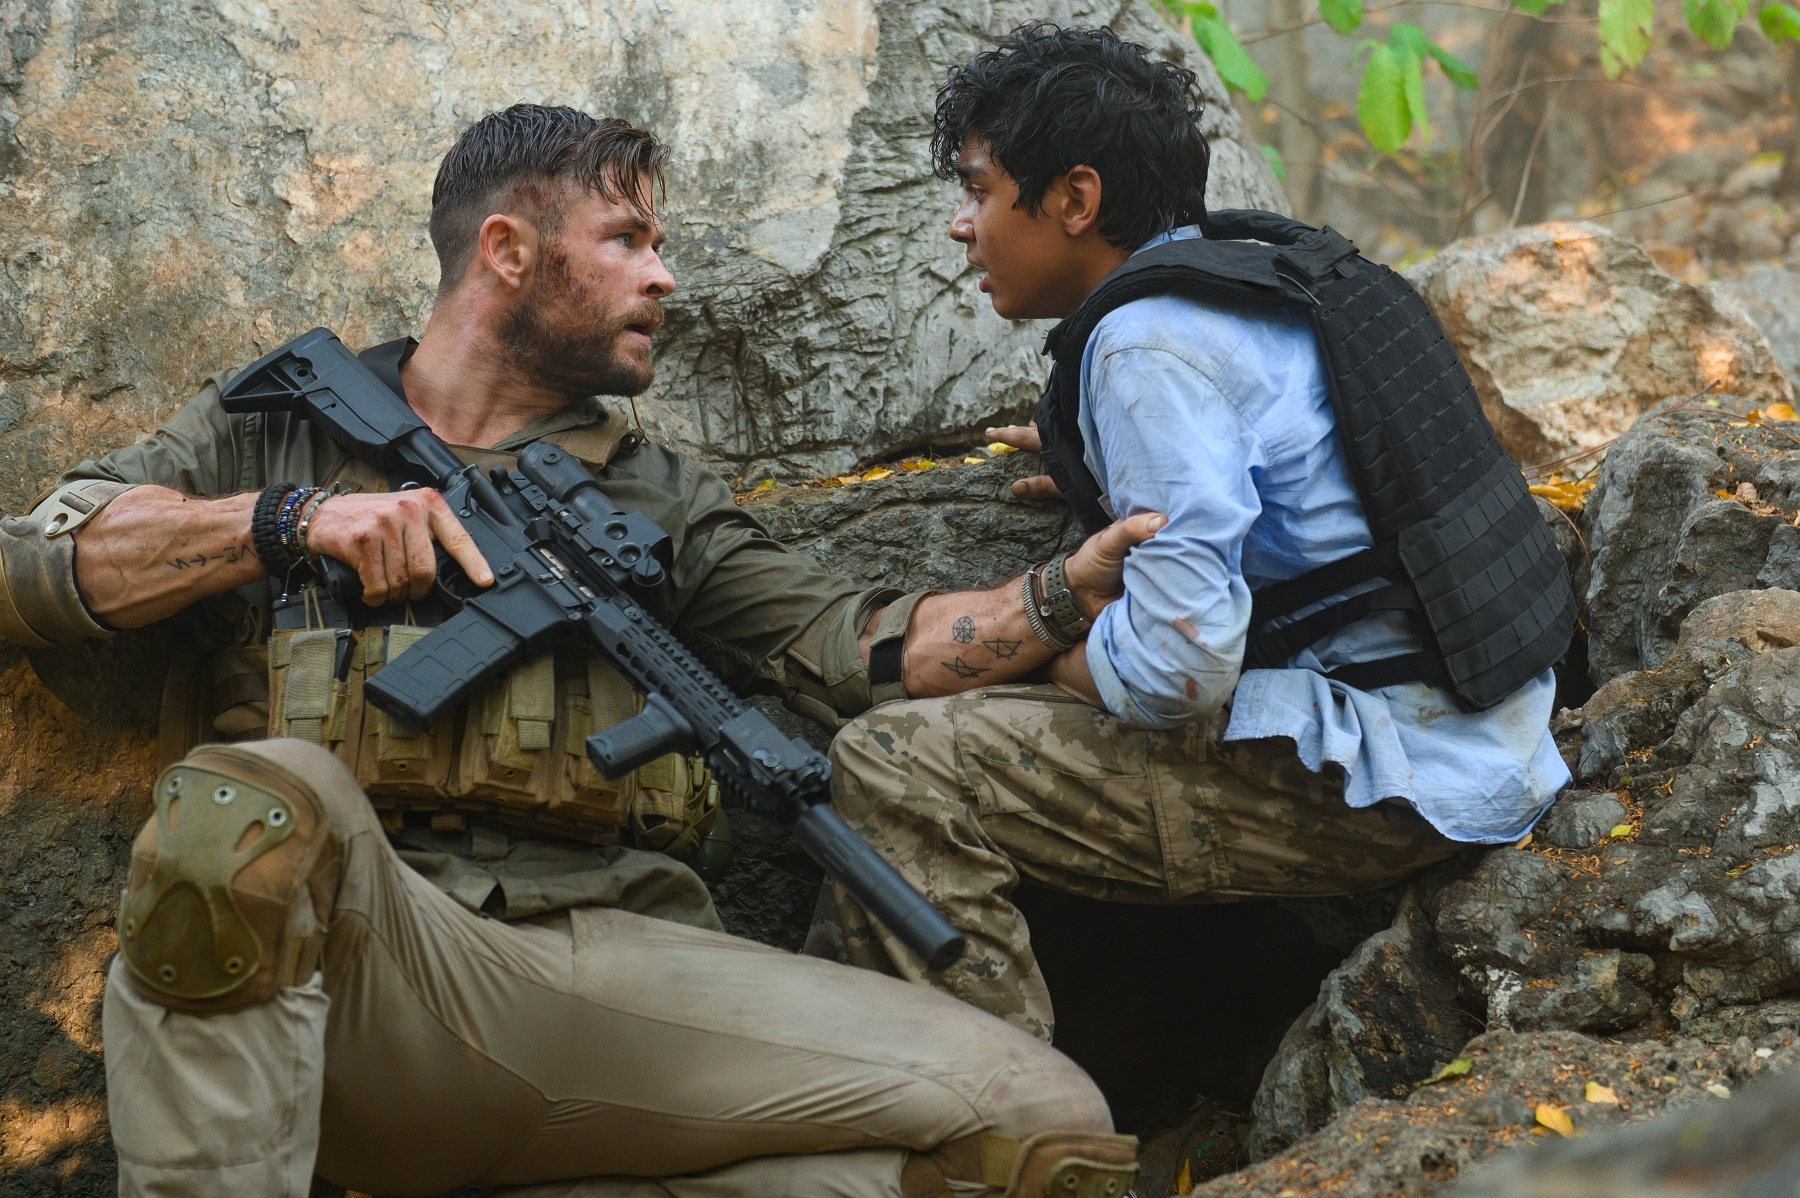 Rake (Chris Hemsworth) and Ovi (Rudhraksh Jaiswal) in Extraction